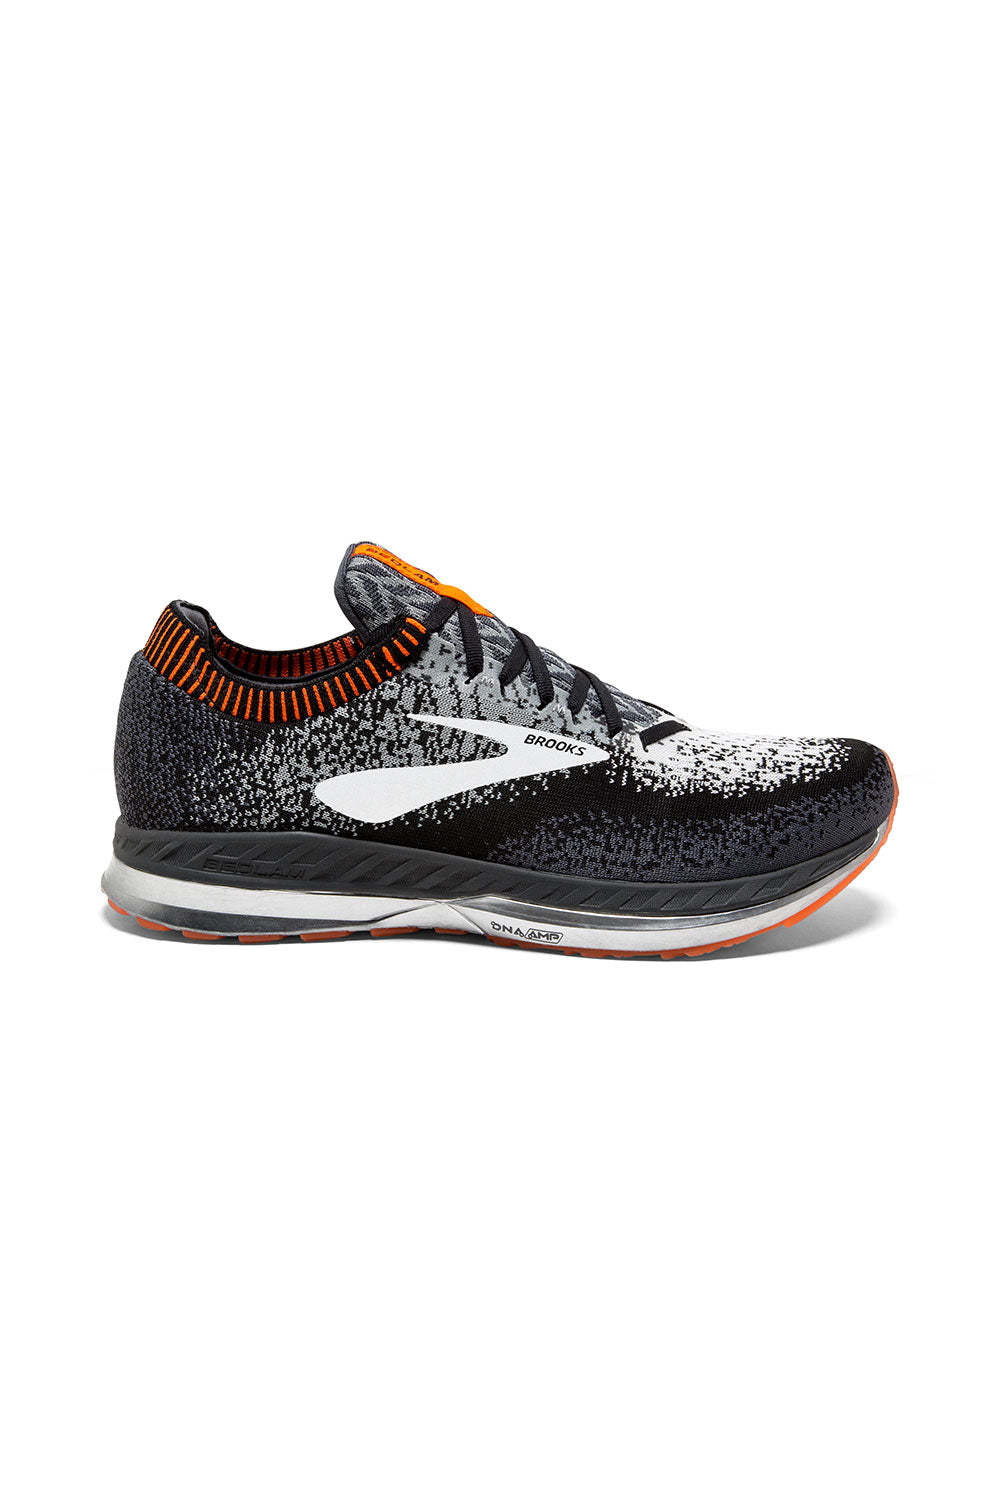 08a5bc0f649 Men s Bedlam Running Shoe - Black Grey Orange – Gazelle Sports